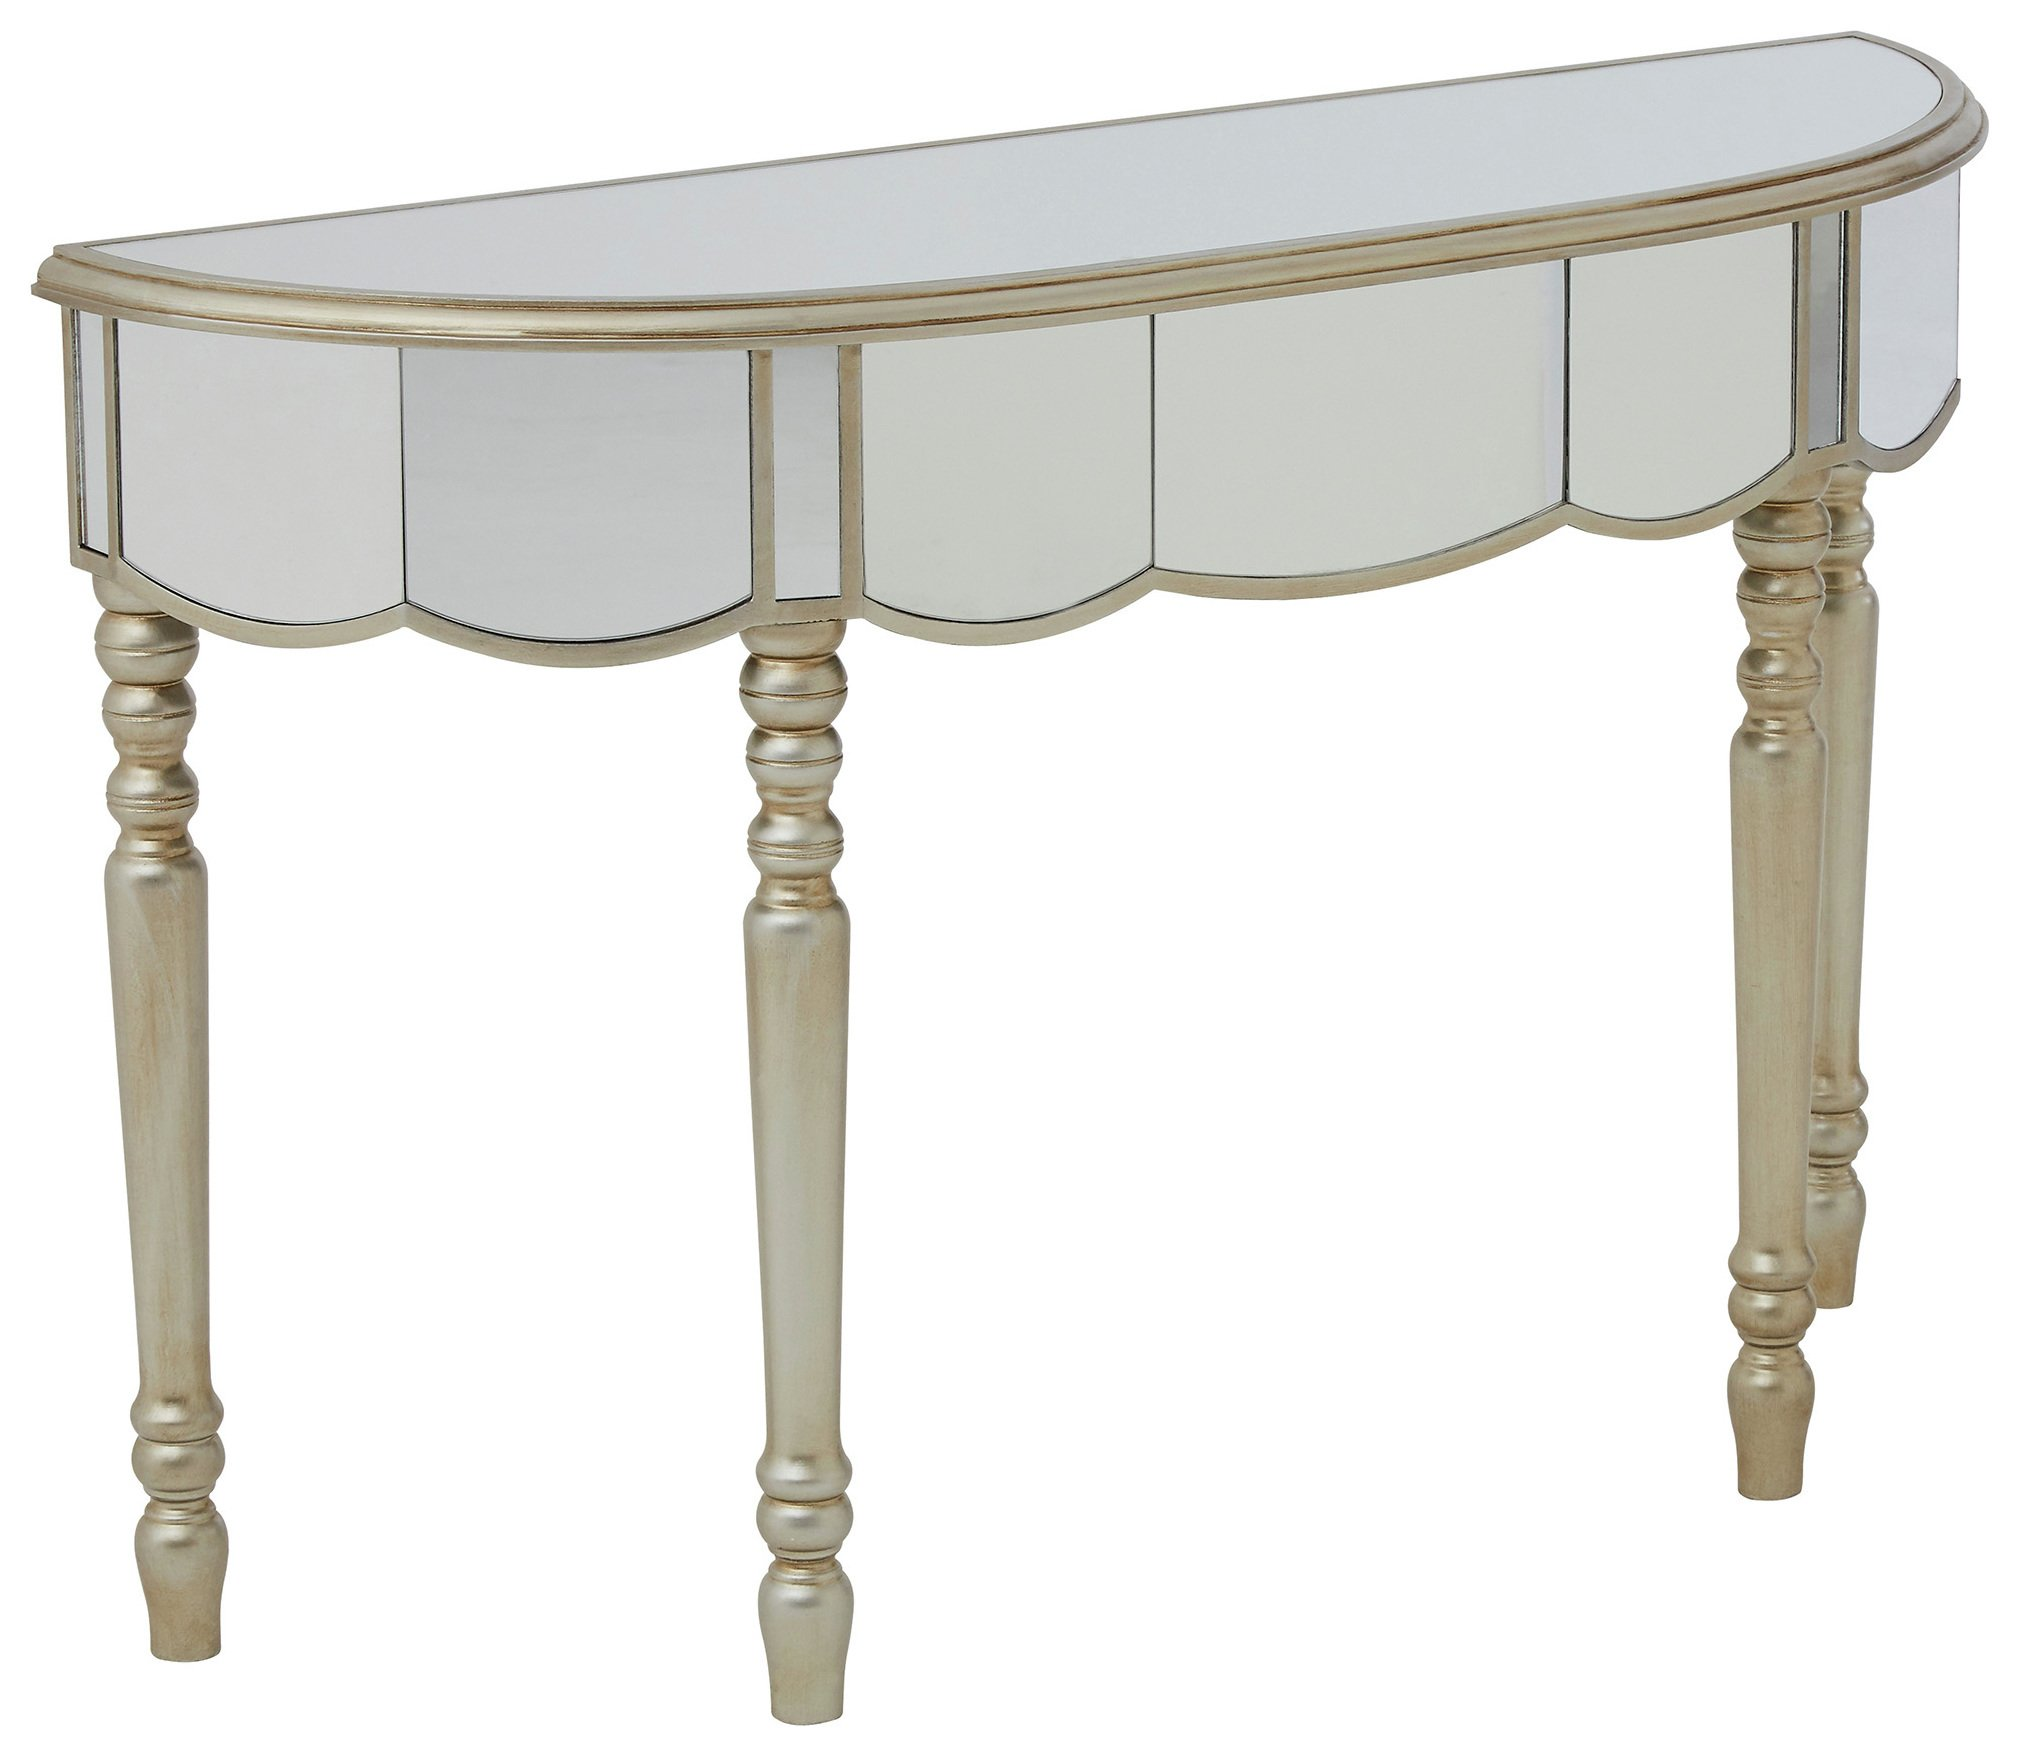 Premier Housewares - Tiffany Mirrored Console Table